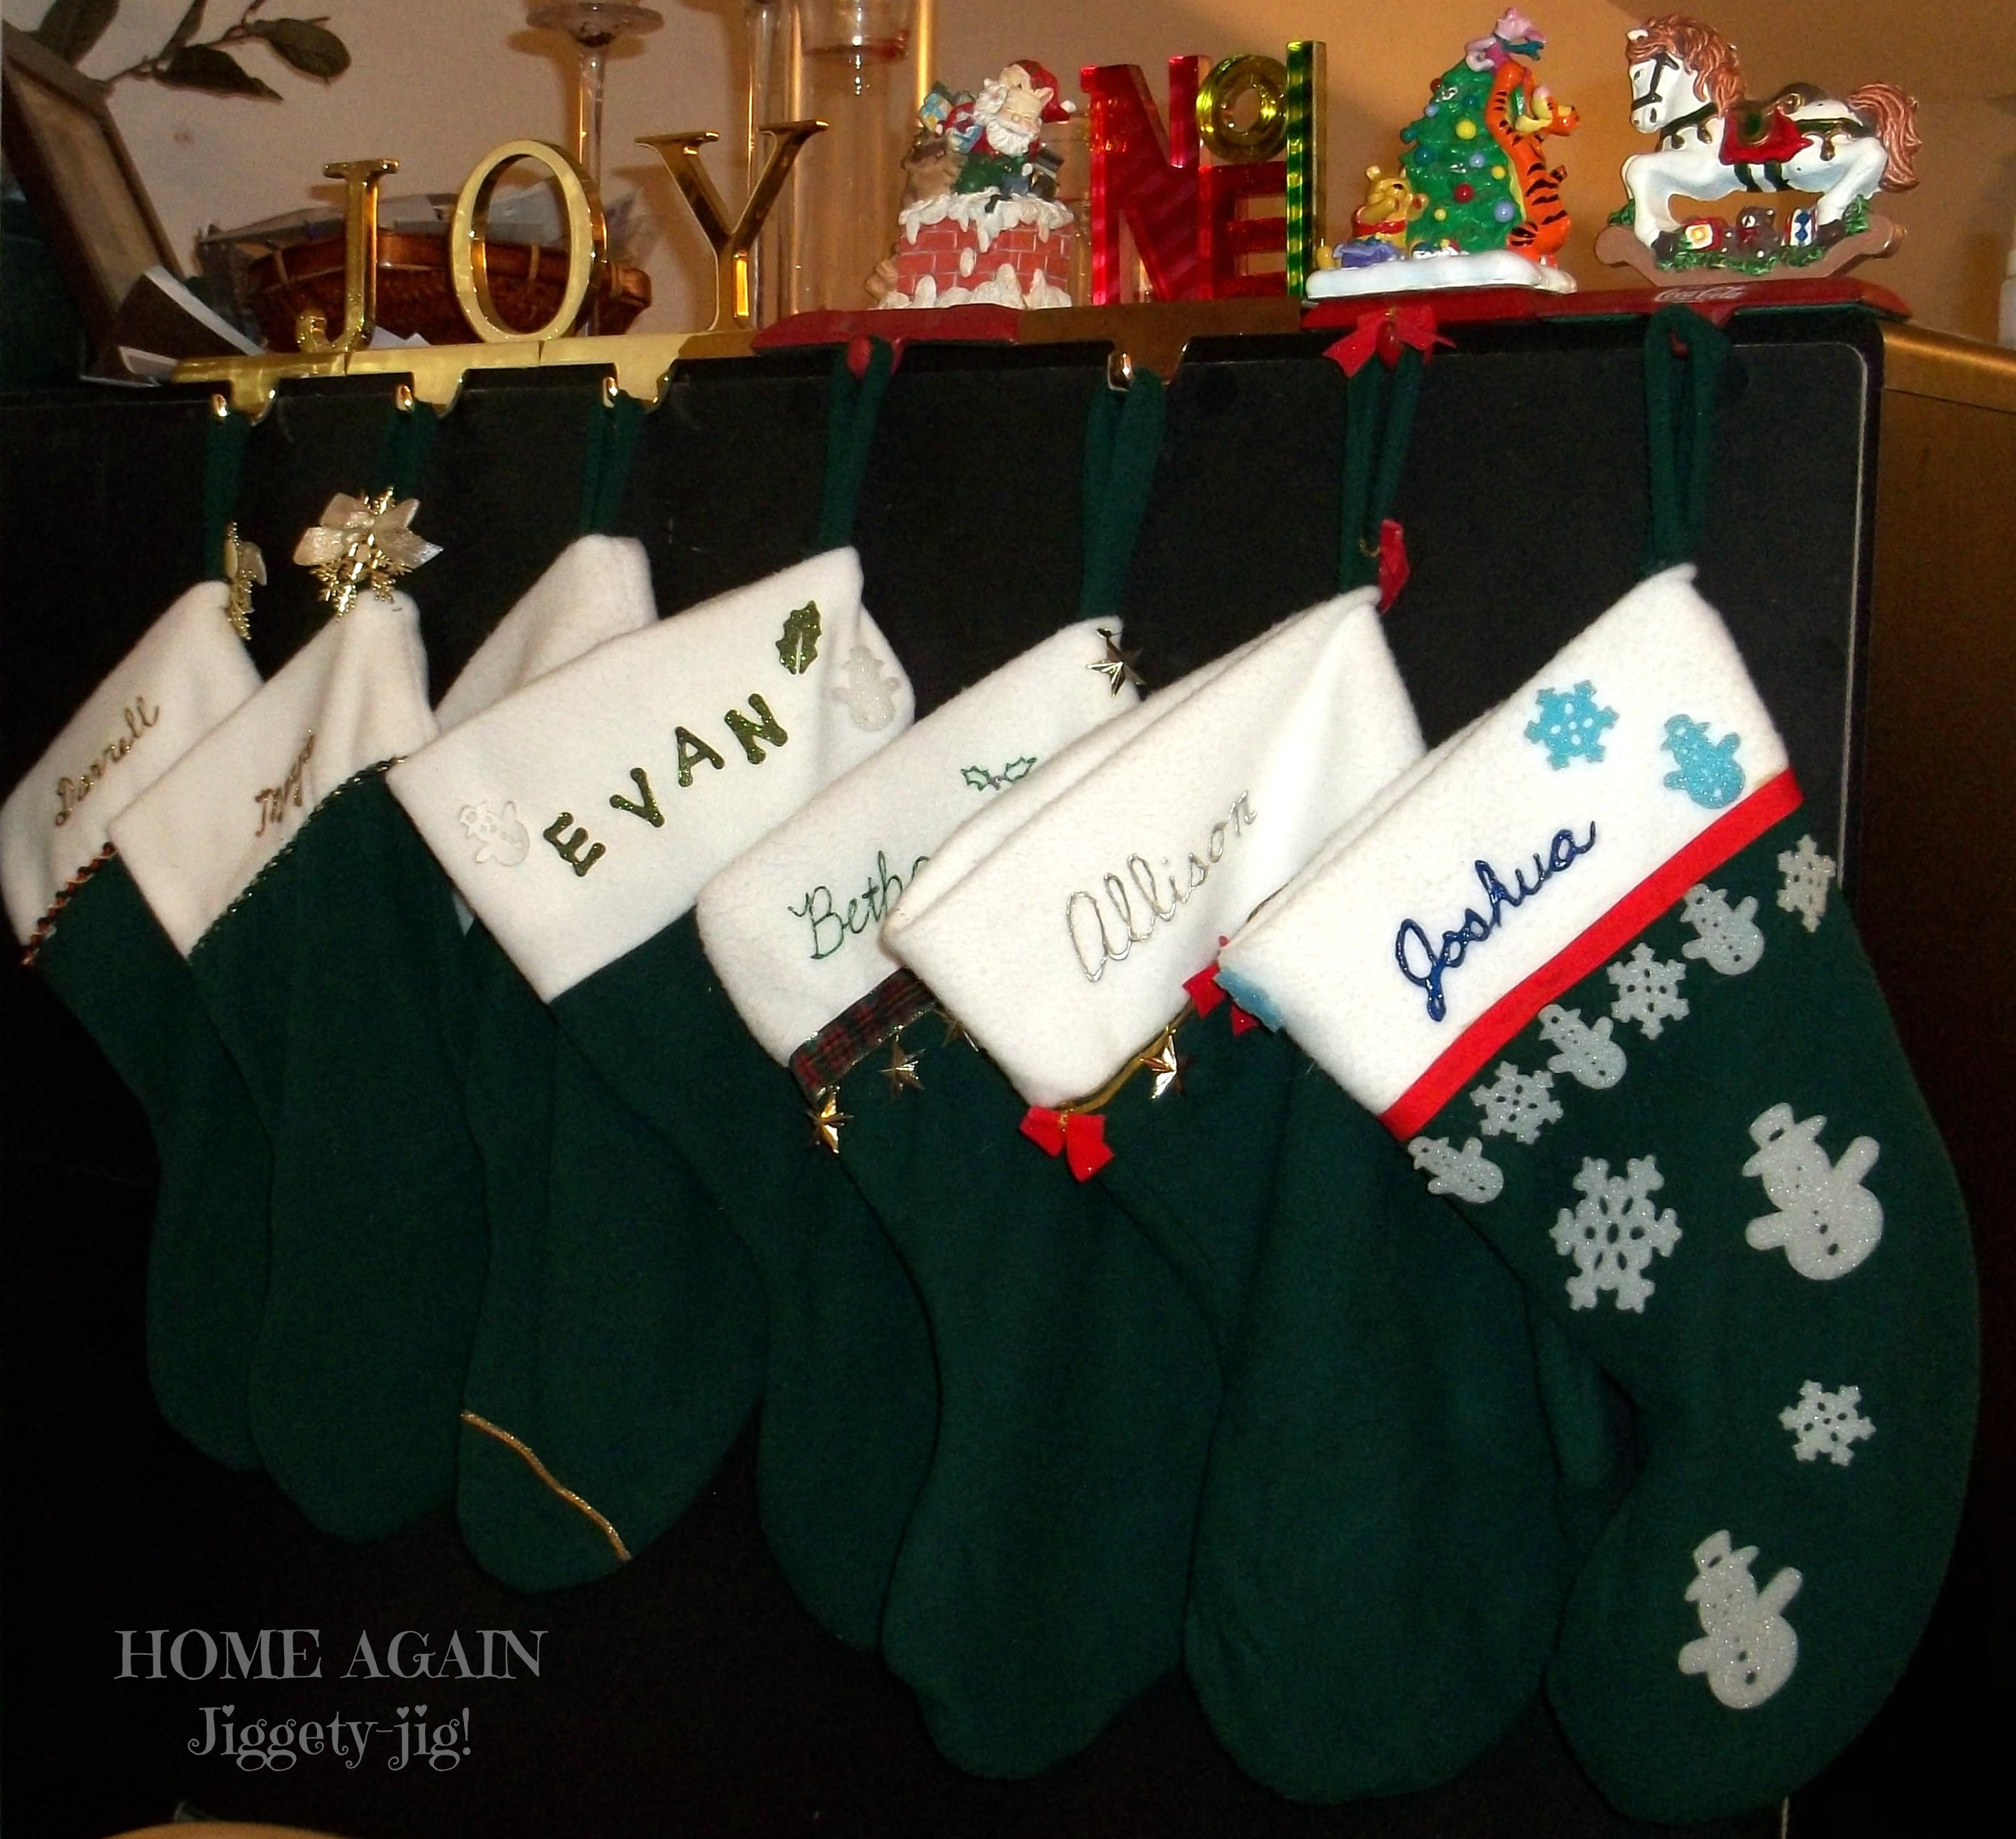 I bought material to sew new ones, using a current Christmas stocking as a pattern, and each kiddo decorated his or her own stocking.